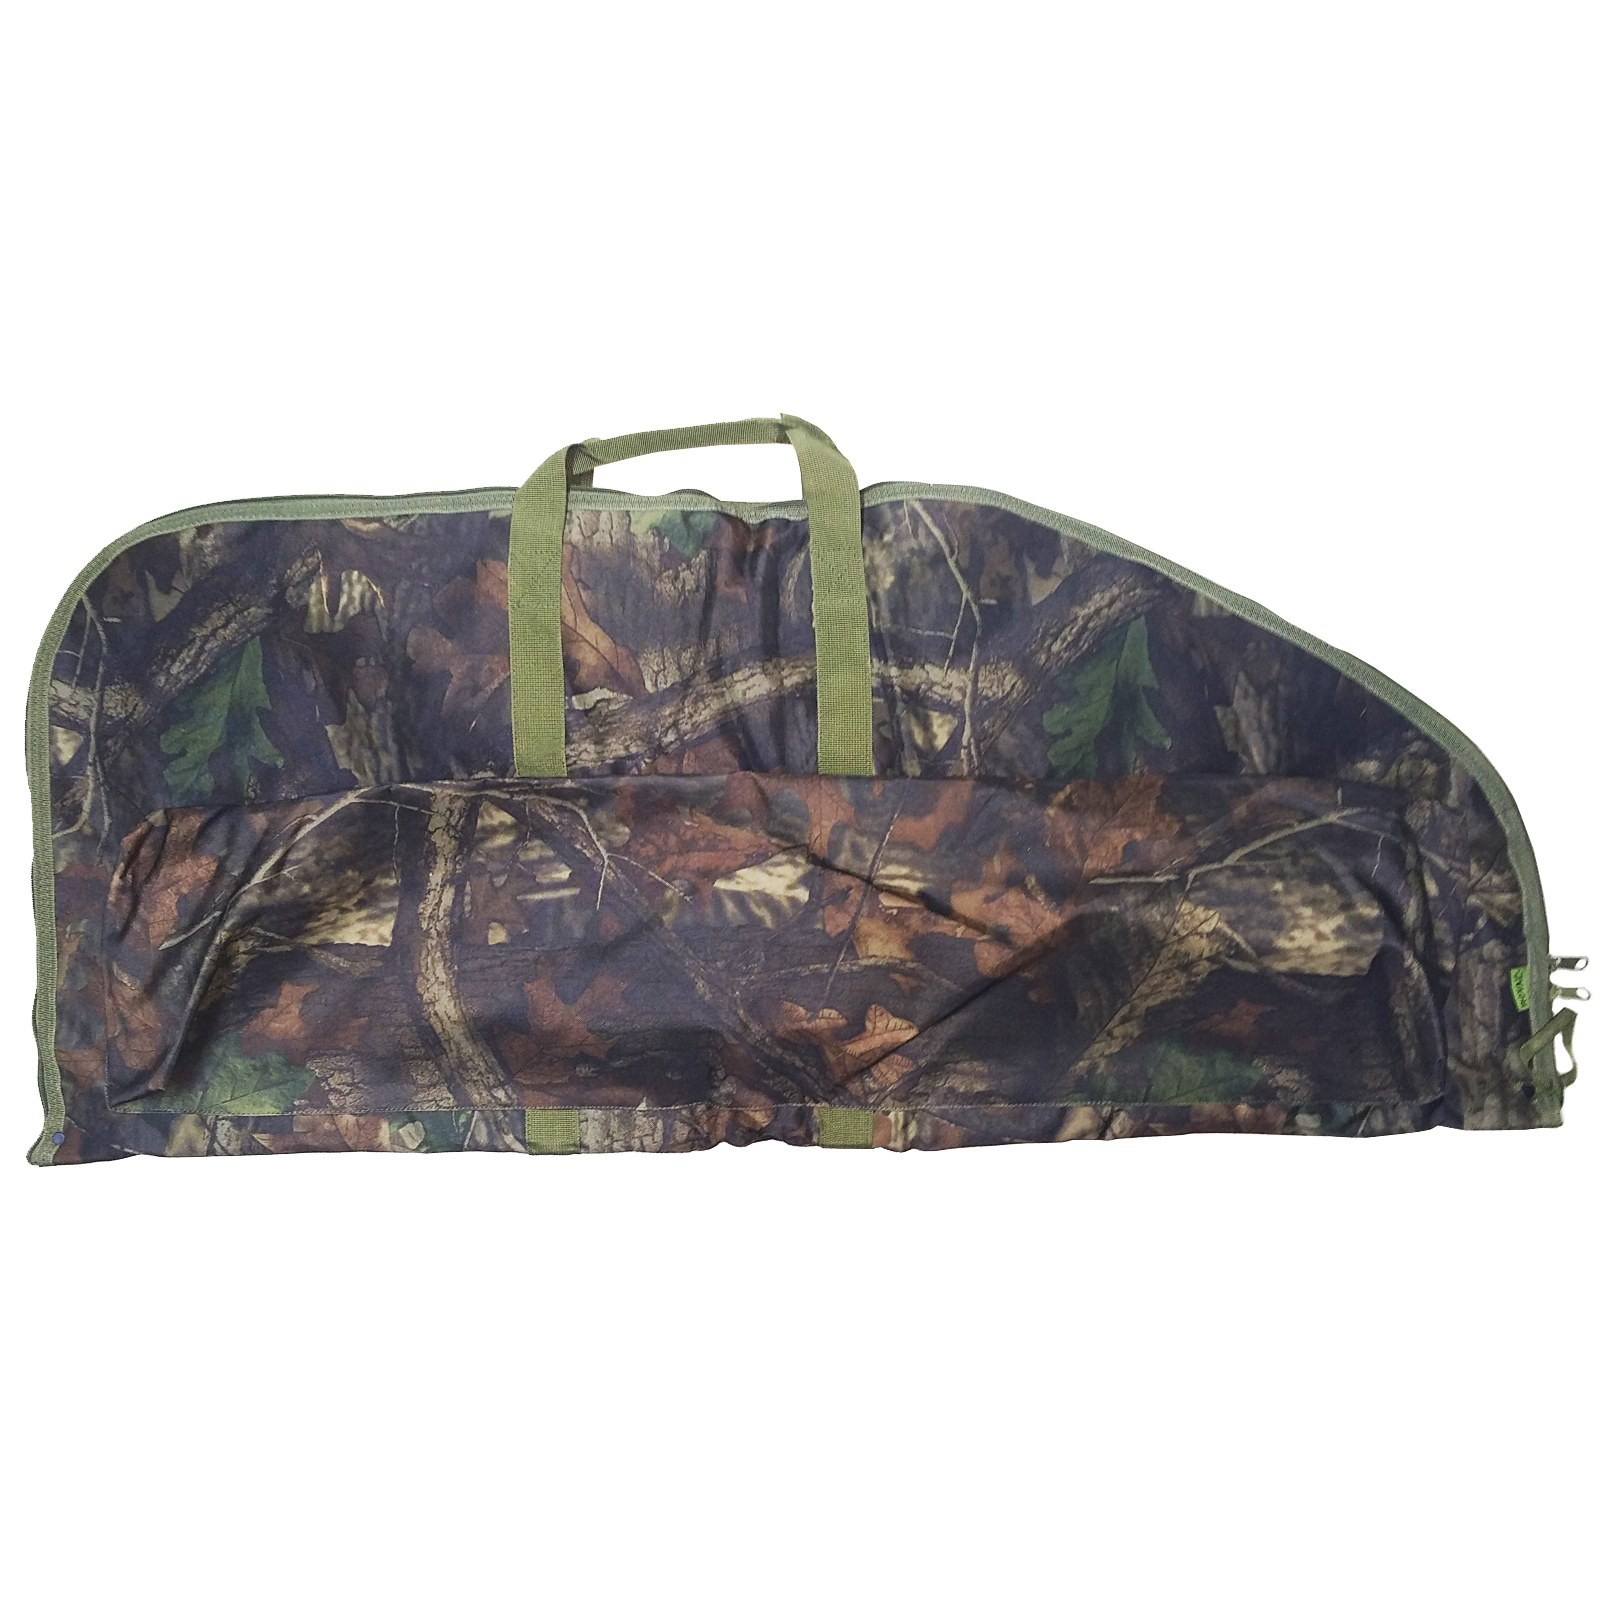 Custodia in Cordura Imbottita per Trasporto Arco Compound Borsa Mimetica Royal